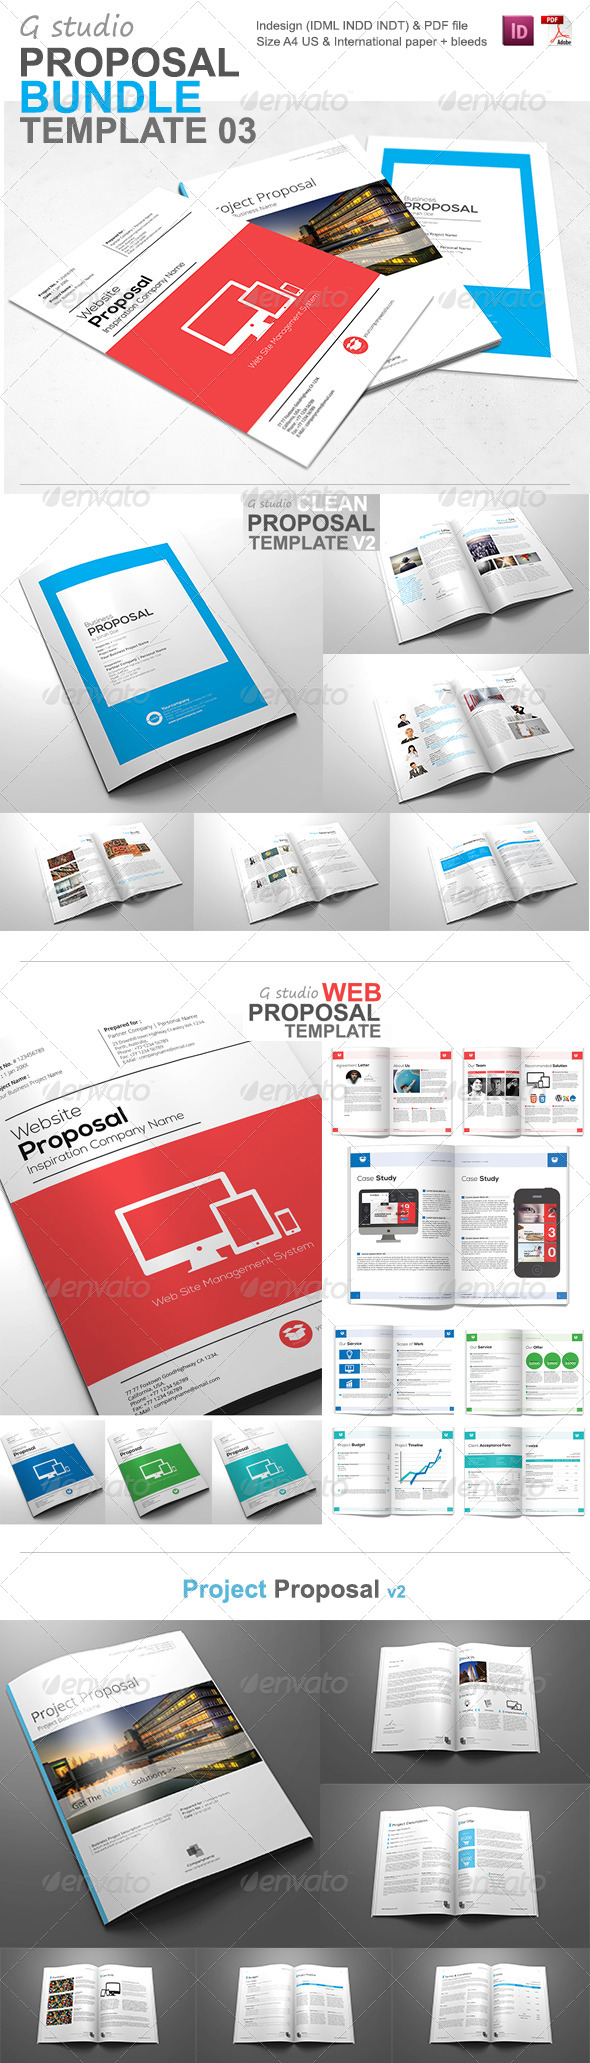 Gstudio Proposal Bundle 03